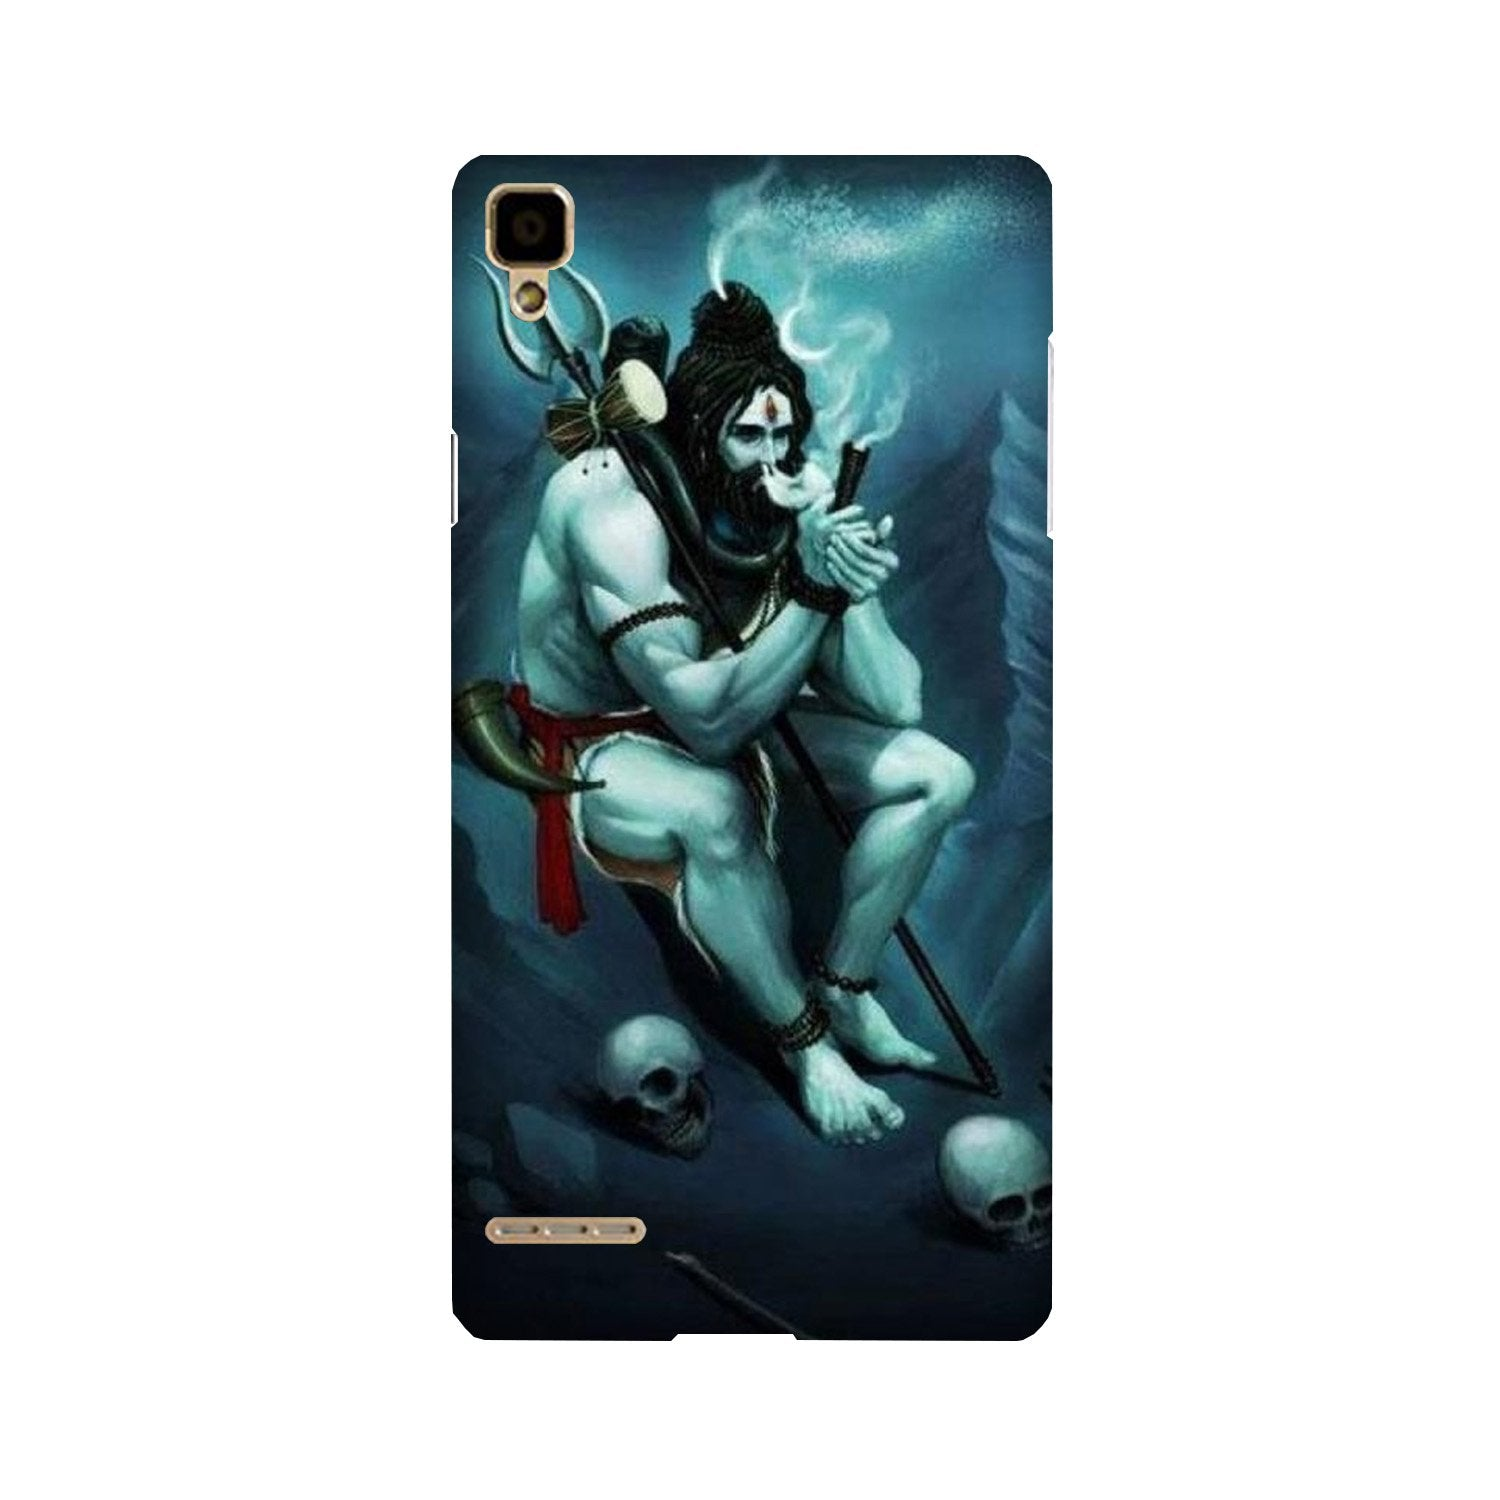 Lord Shiva Mahakal2 Case for Oppo F1